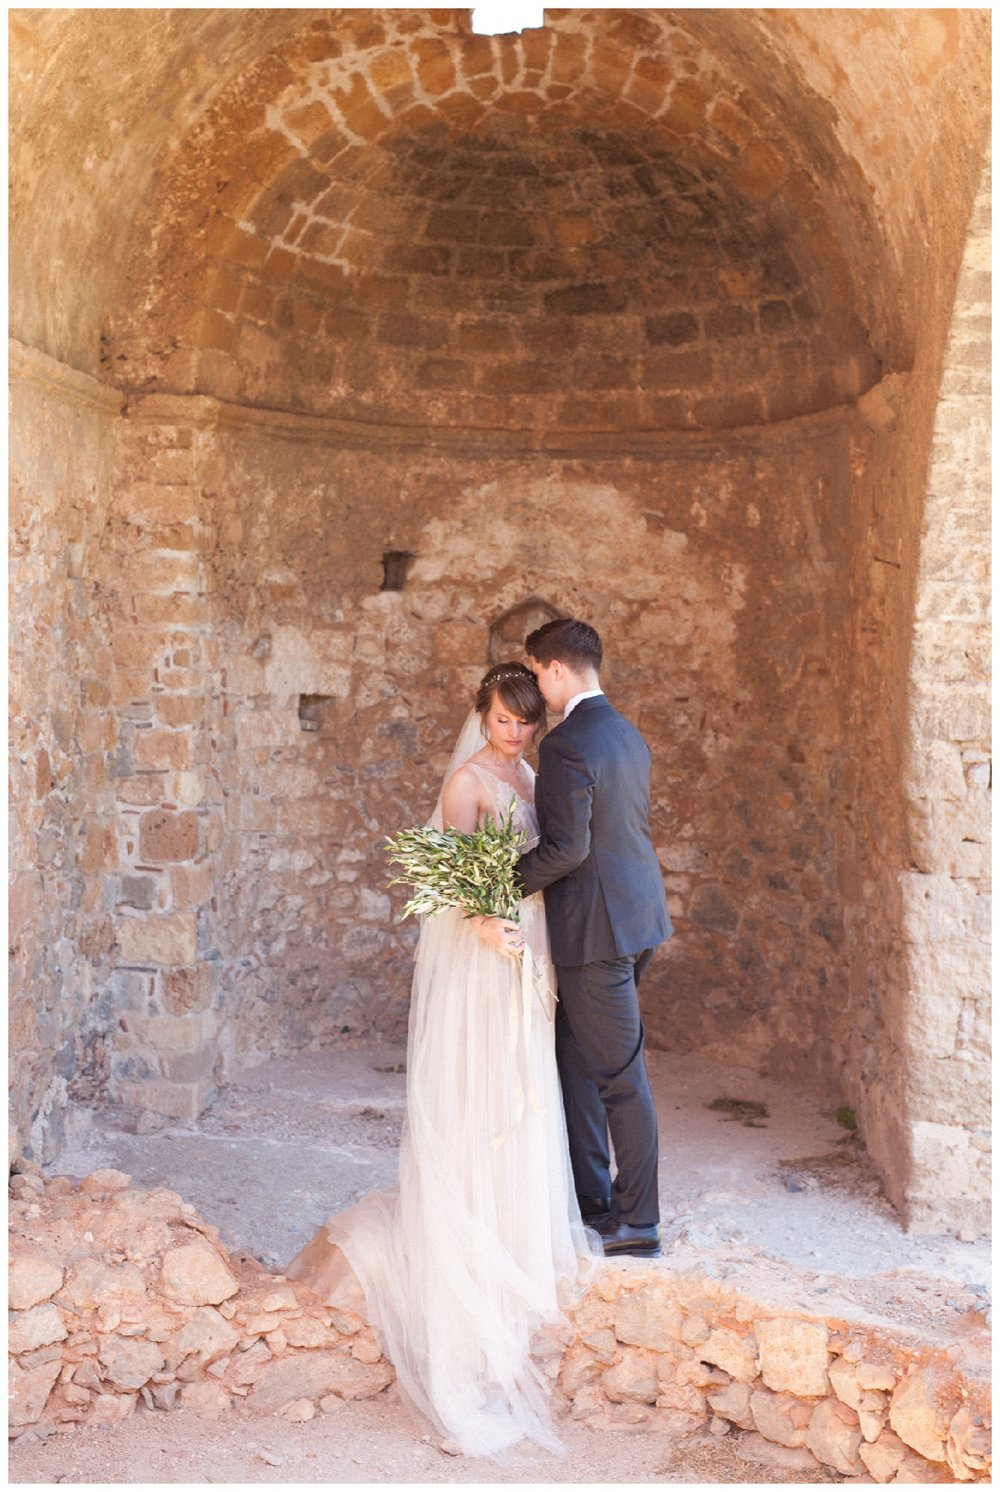 Greek Destination Wedding - Tessa Kit Photography - Wedding Photographer - Monemvasia Greece - IMG_2559-.jpg